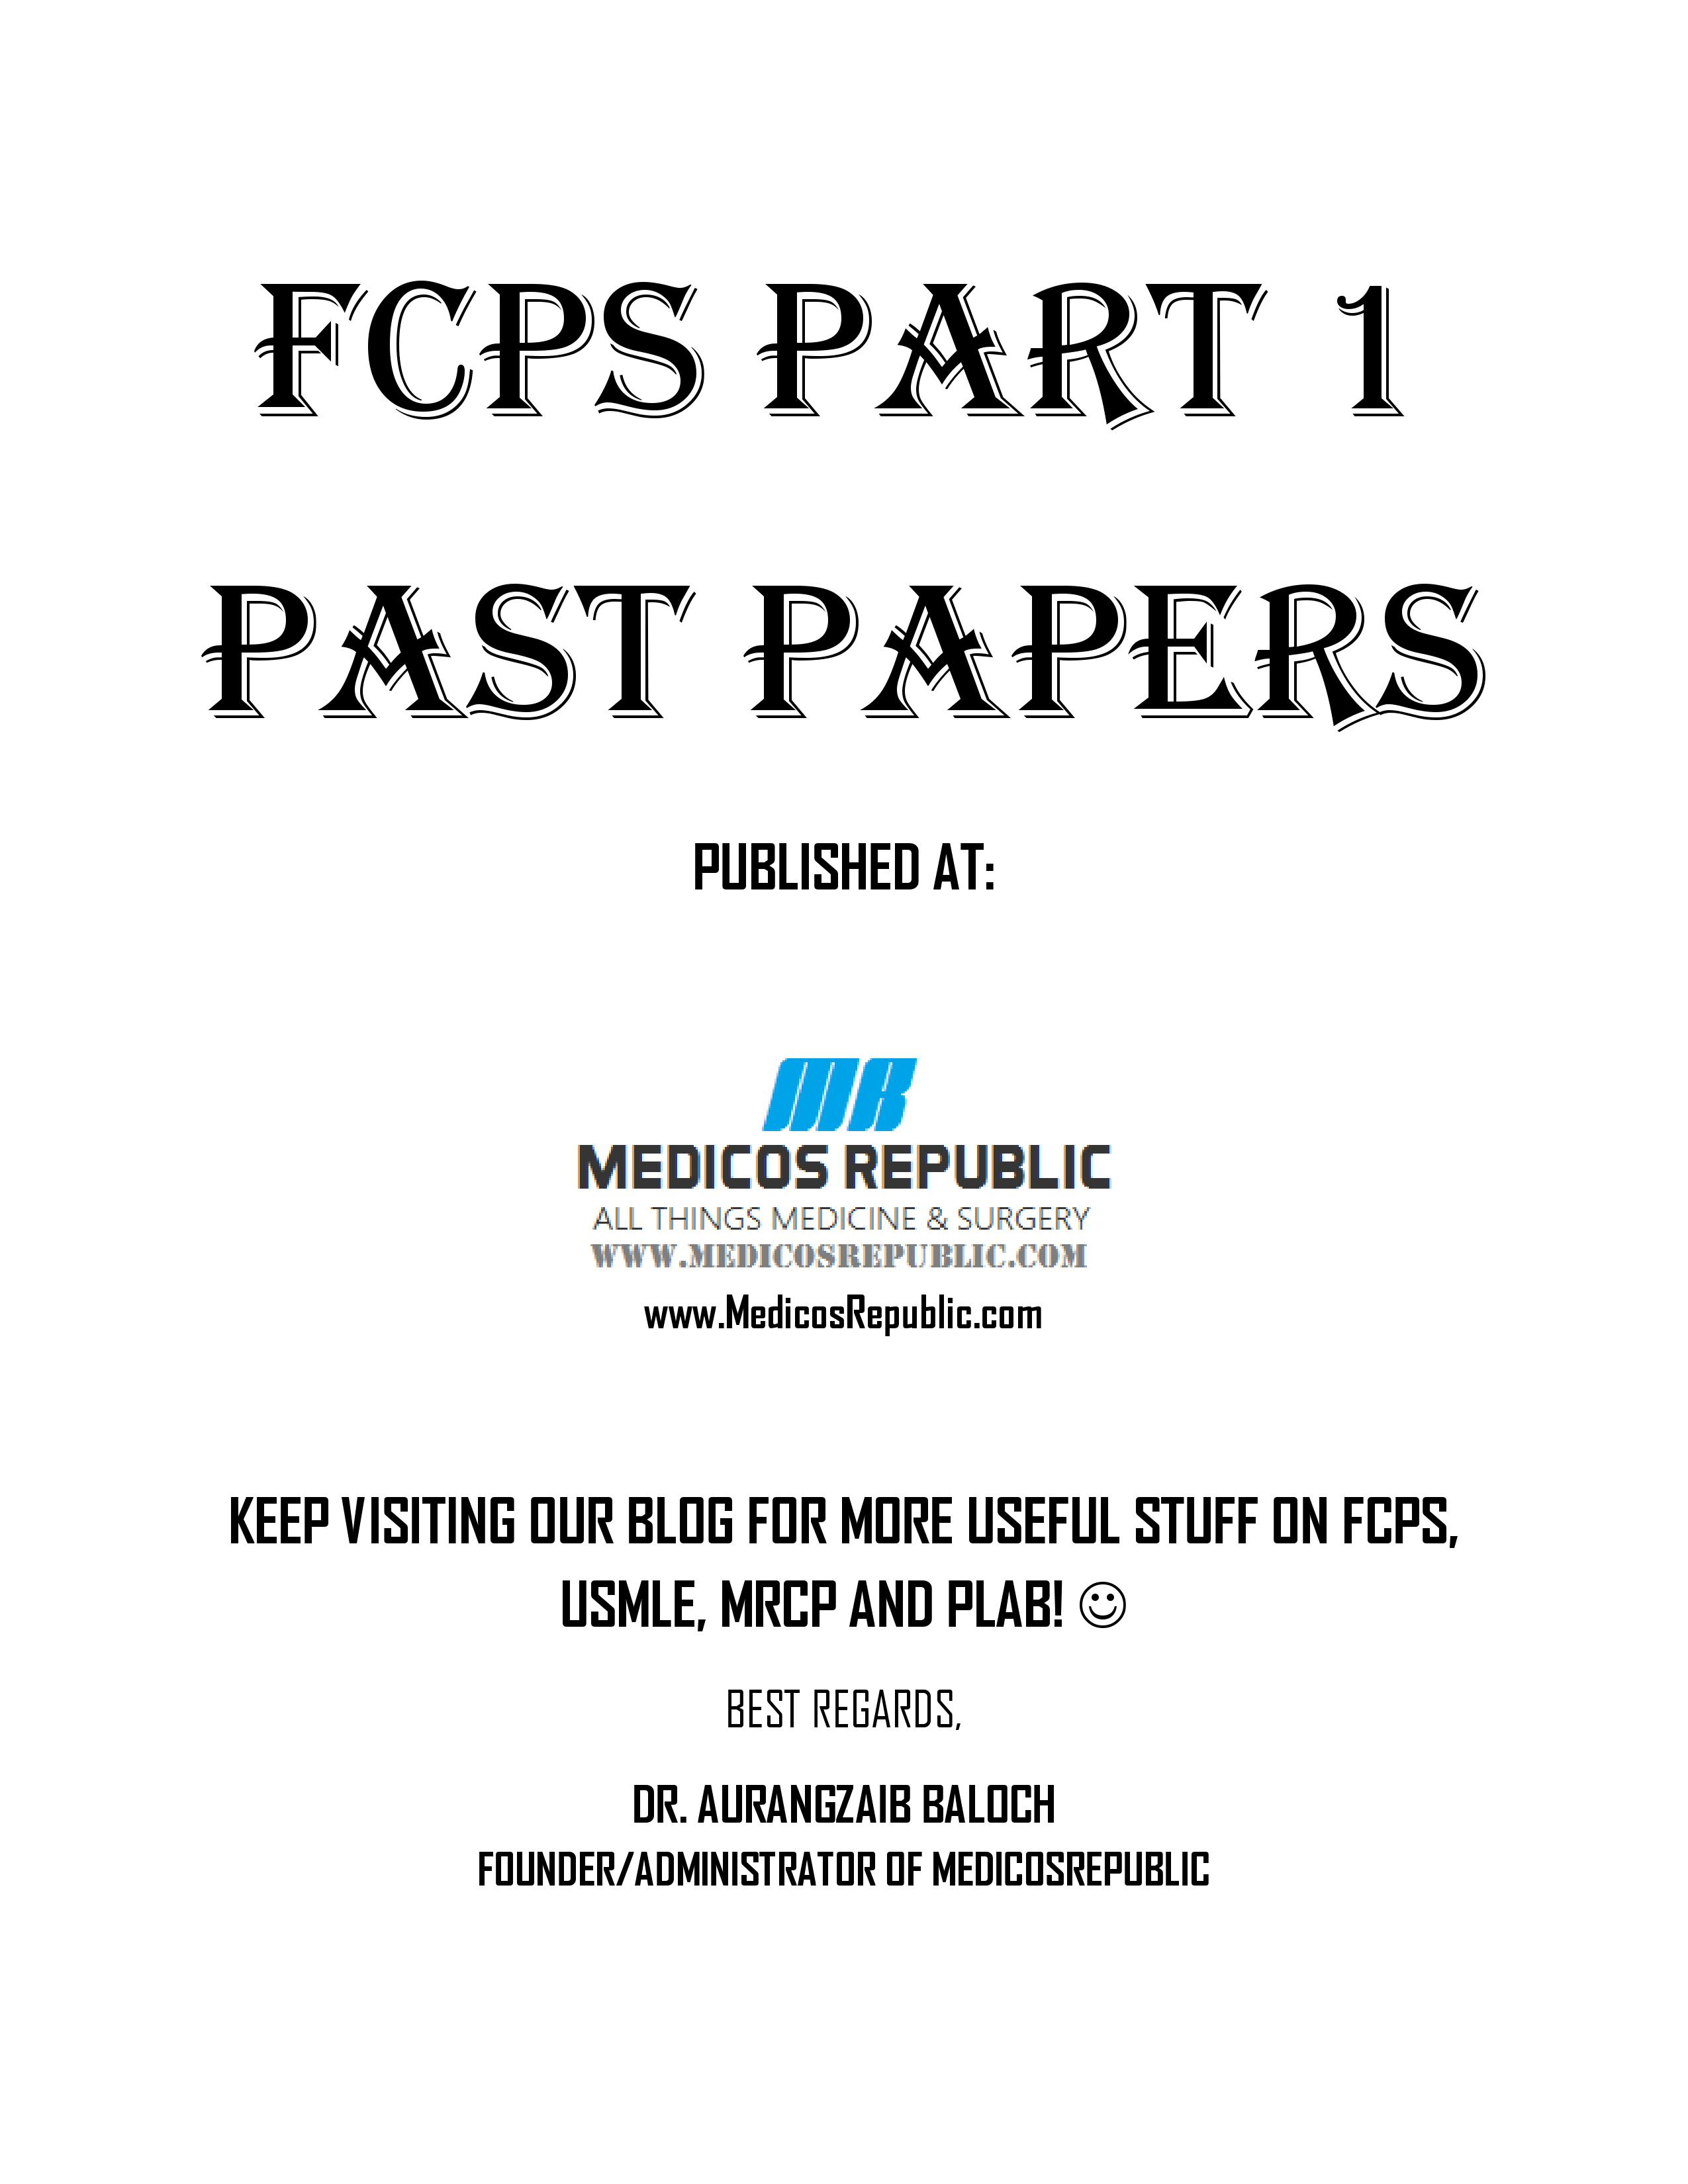 FCPS Part 1 Past Papers